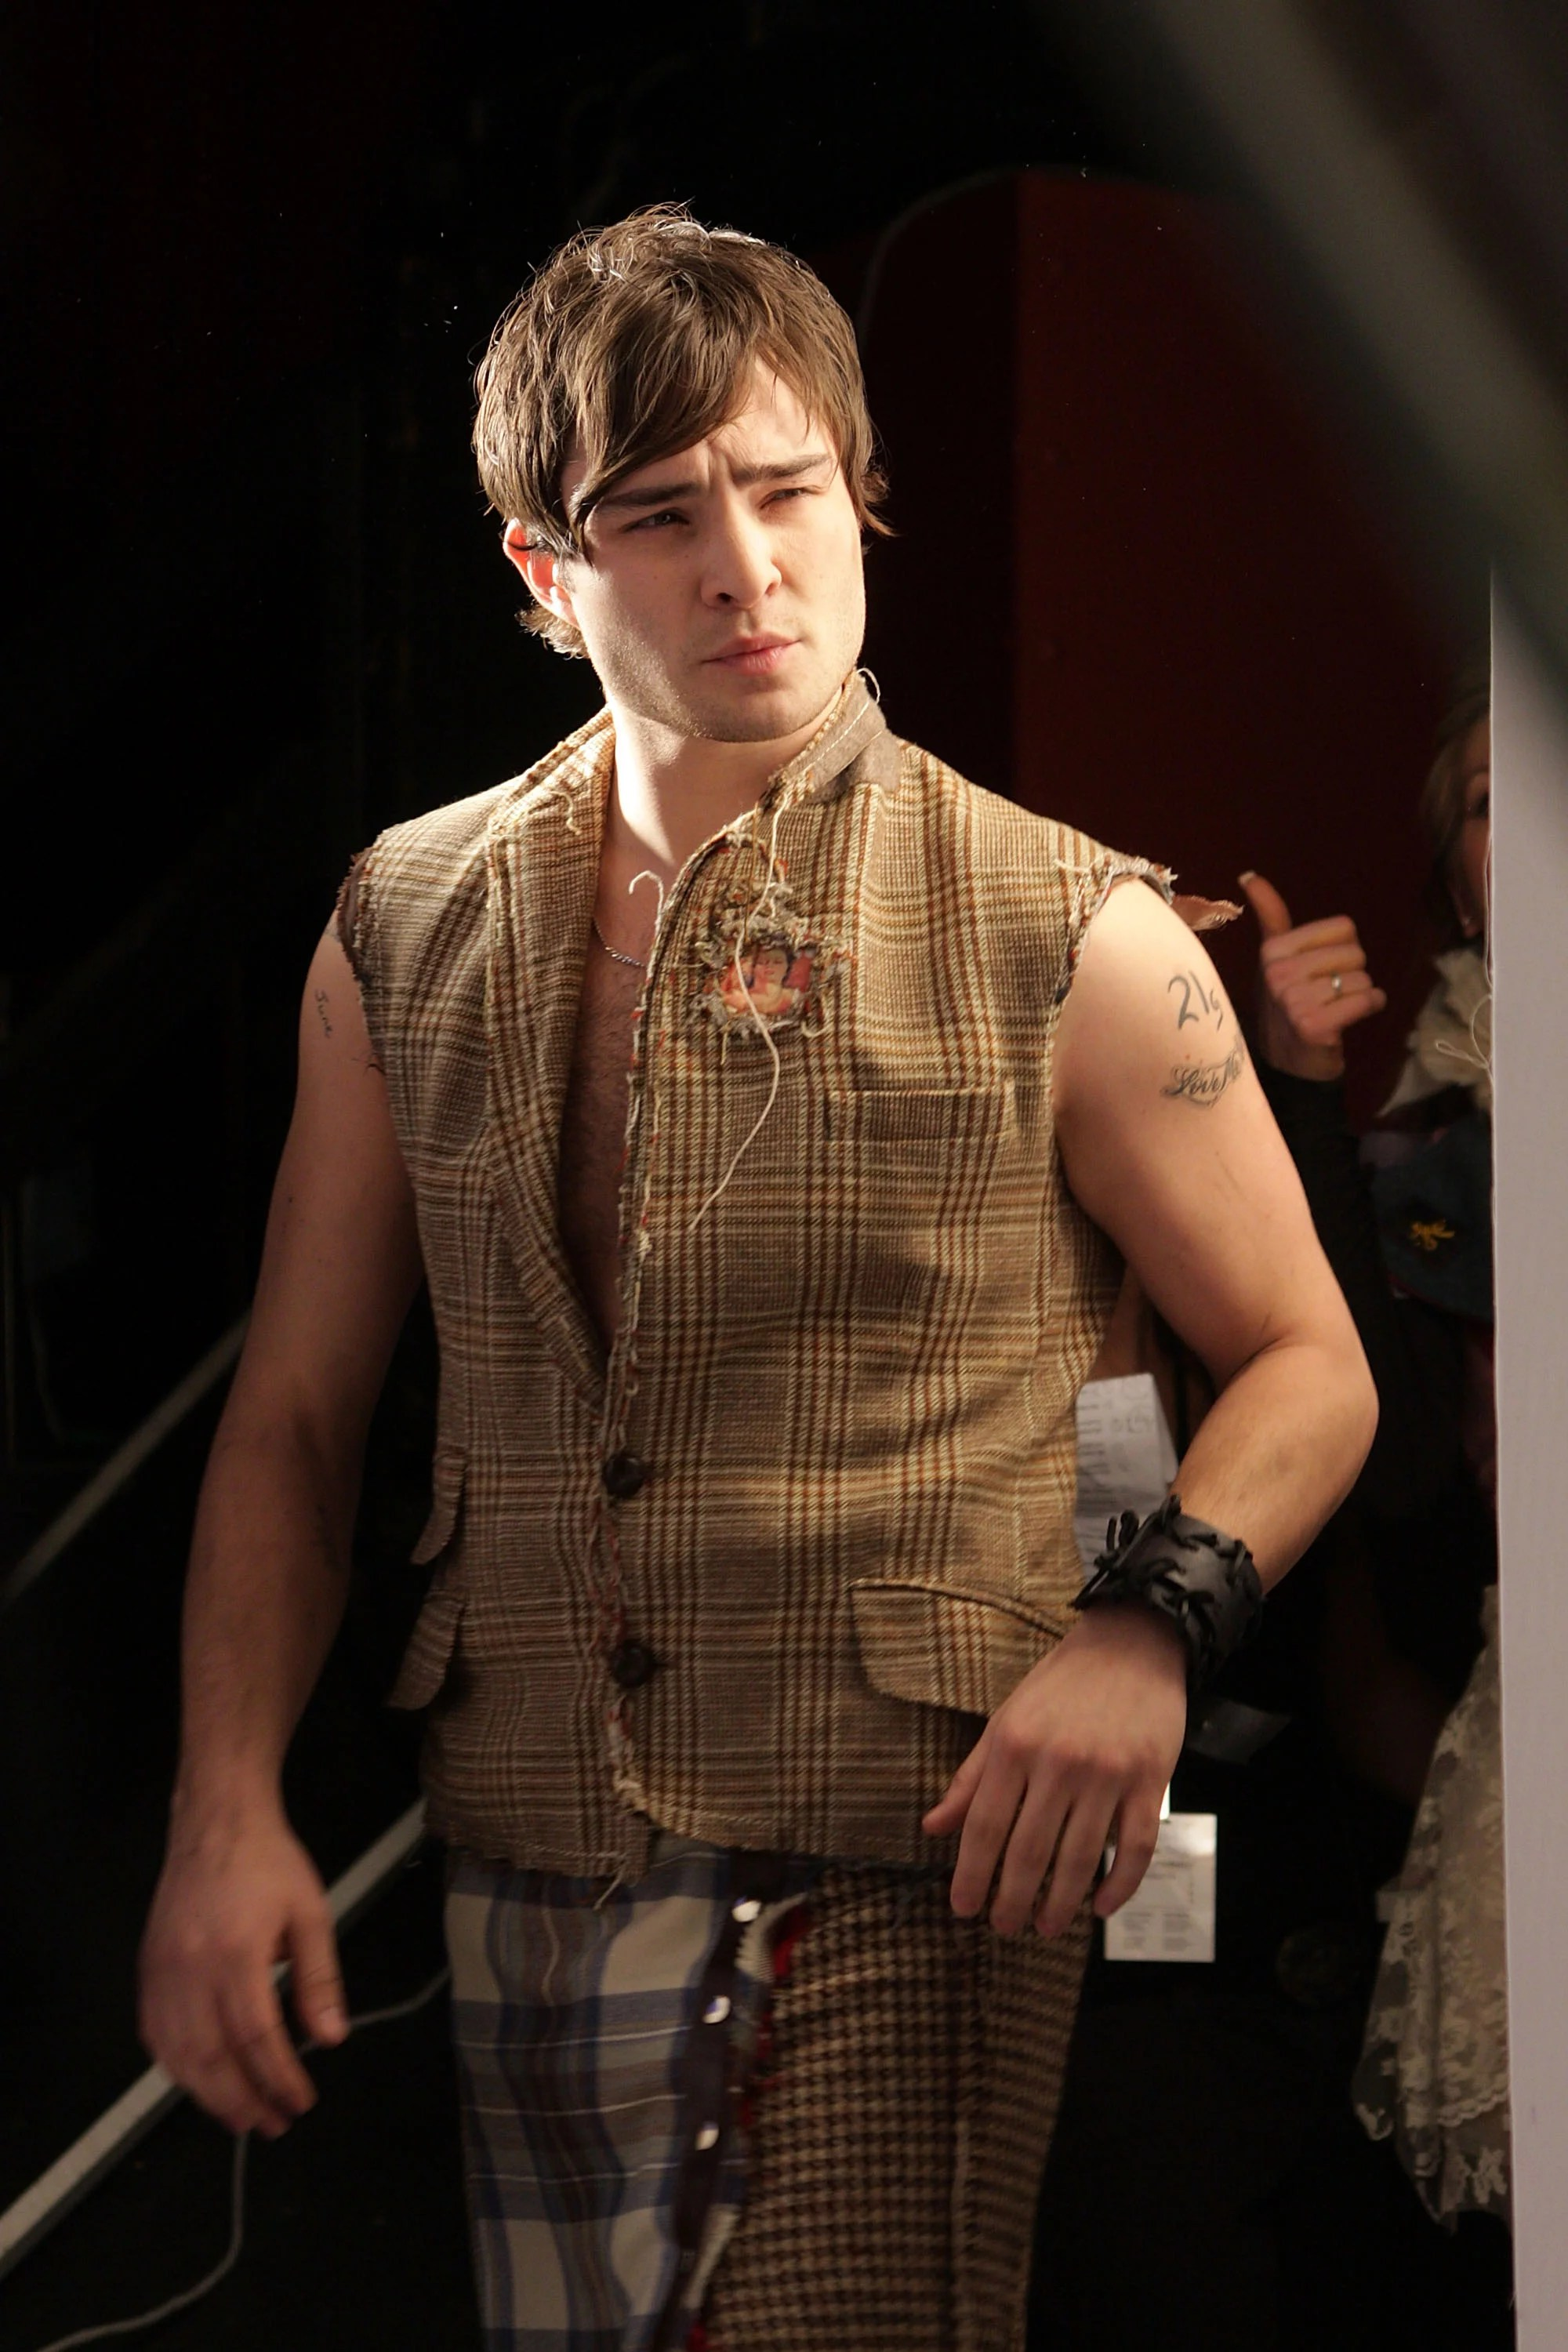 Photos of Ed Westwick in a Kilt at the Dressed to Kilt ...